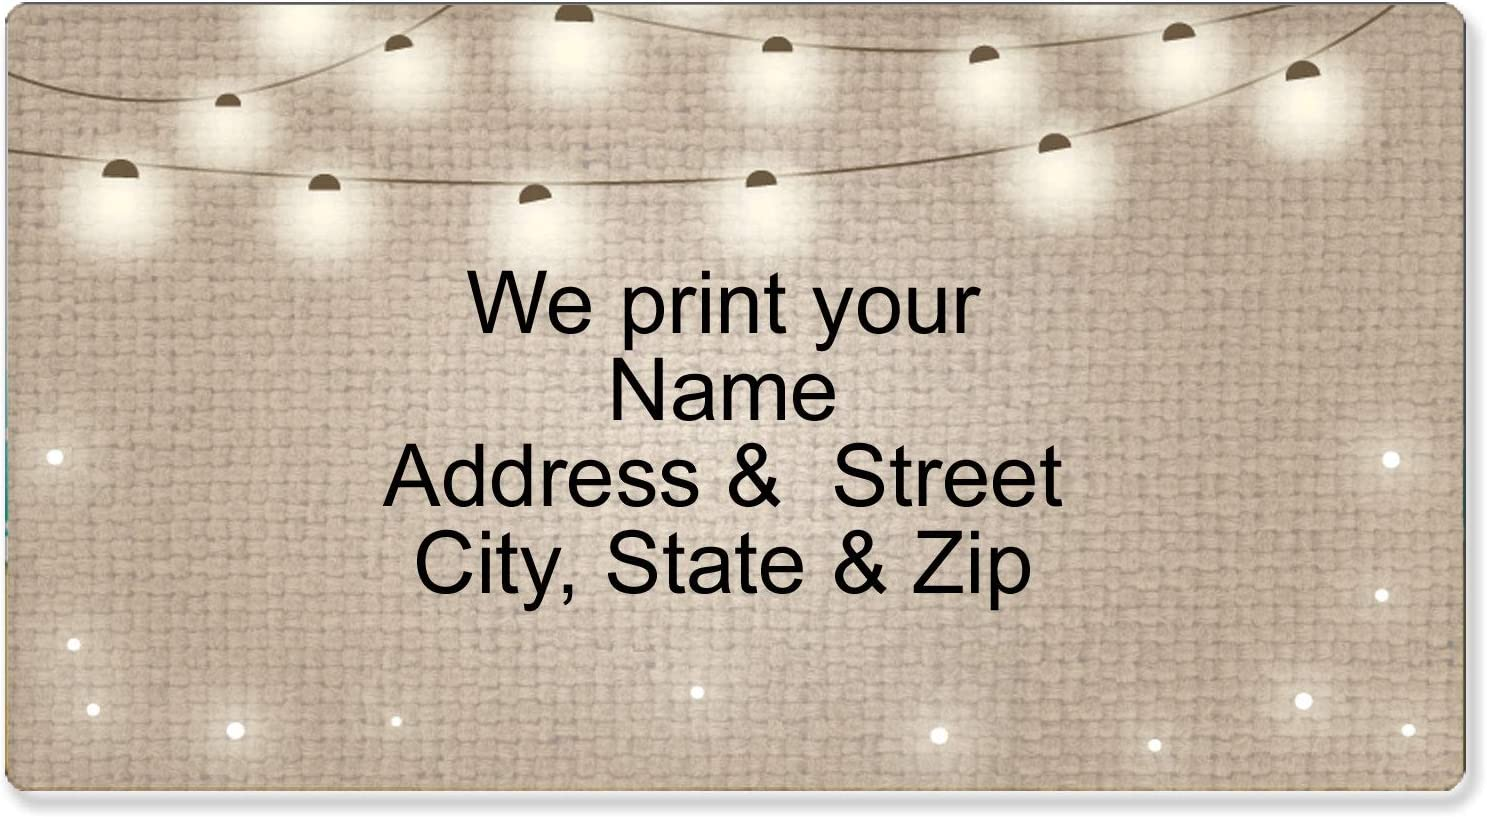 90 BALL COUNTRY FLOWER BIG PERSONALIZED ADDRESS LABELS 2.625 X 1 INCH